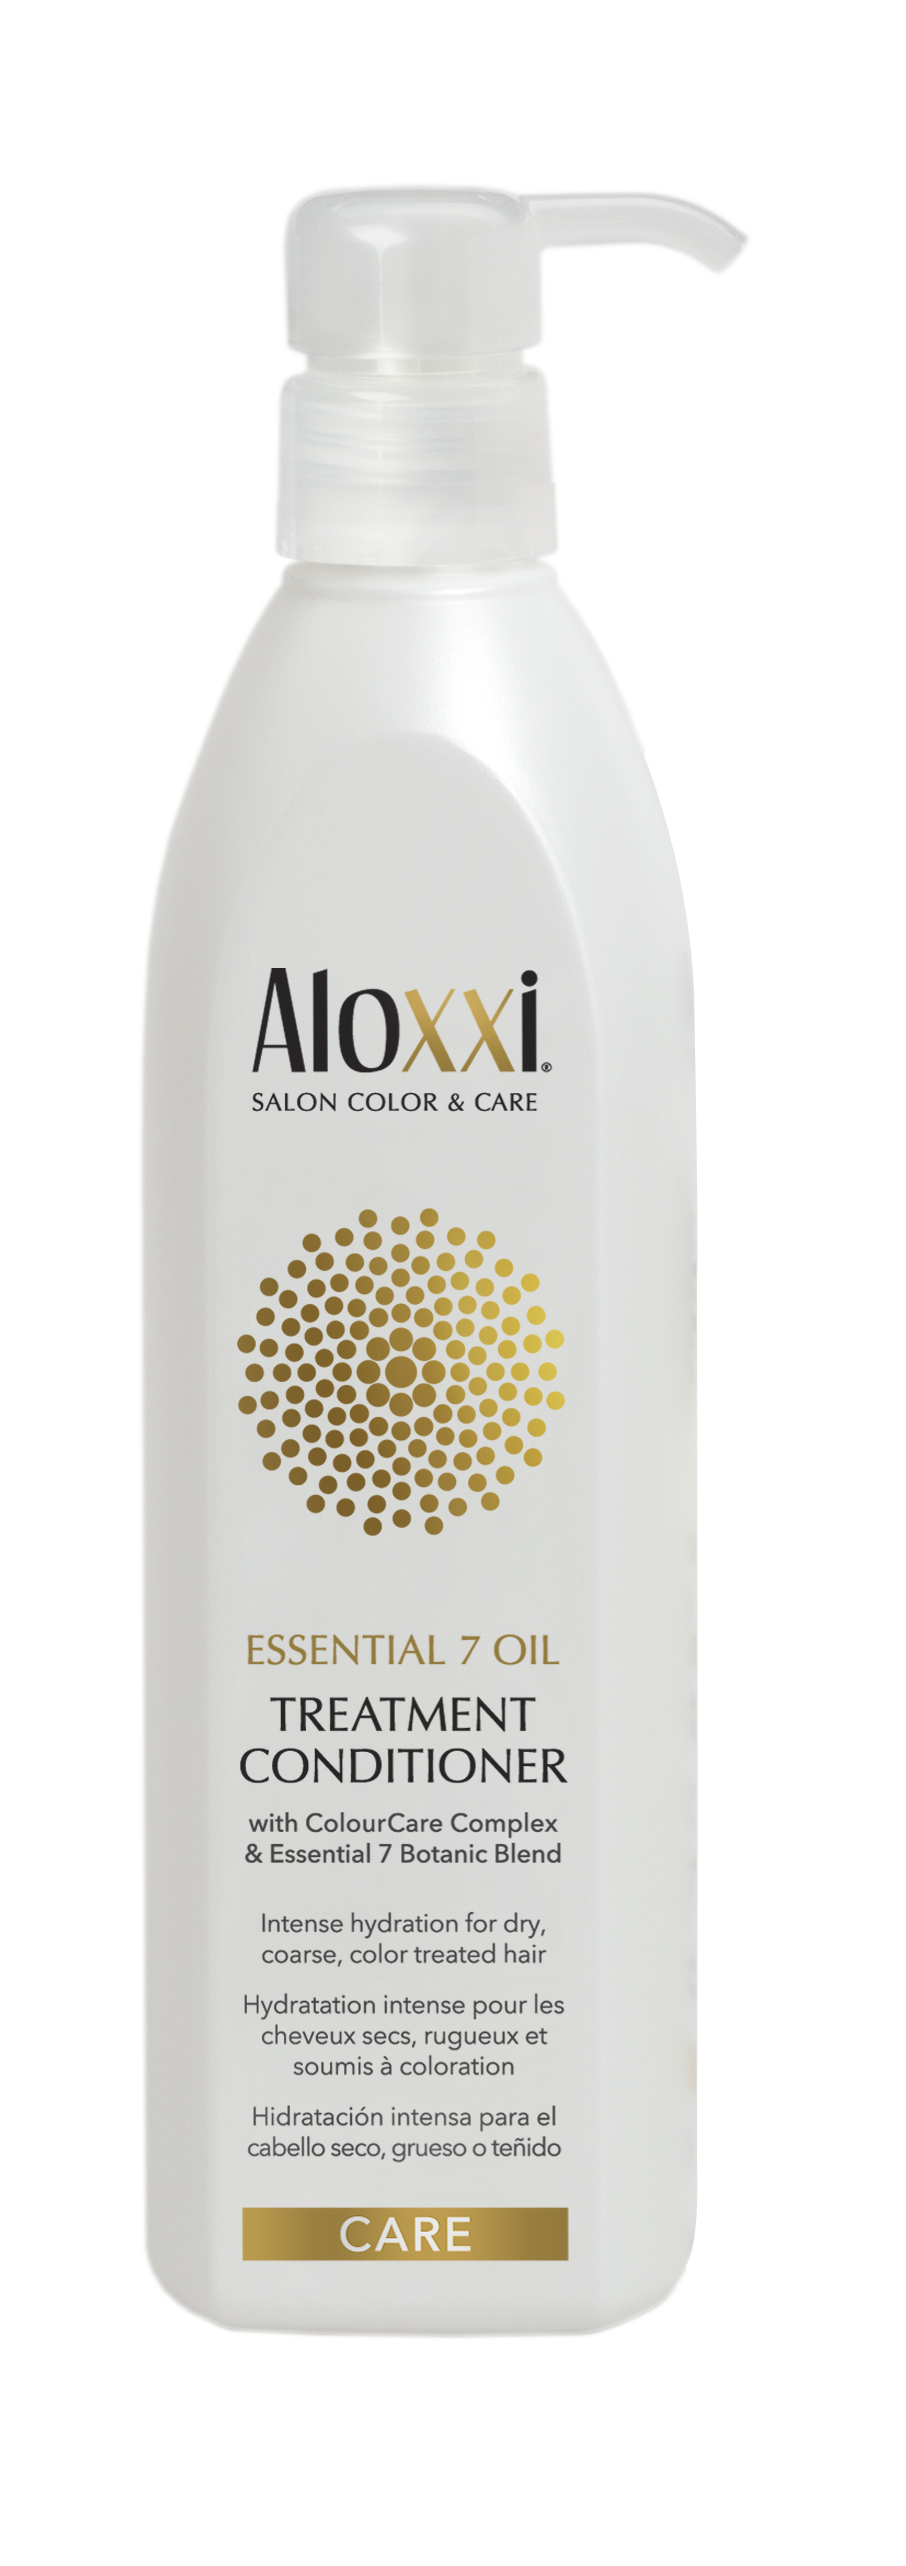 Aloxxi  Essential 7 Oil Care Treatment Conditioner restores vital moisture to the hair with buriti fruit extract while cupuaçu butter fortifies the hair for a silky touch.